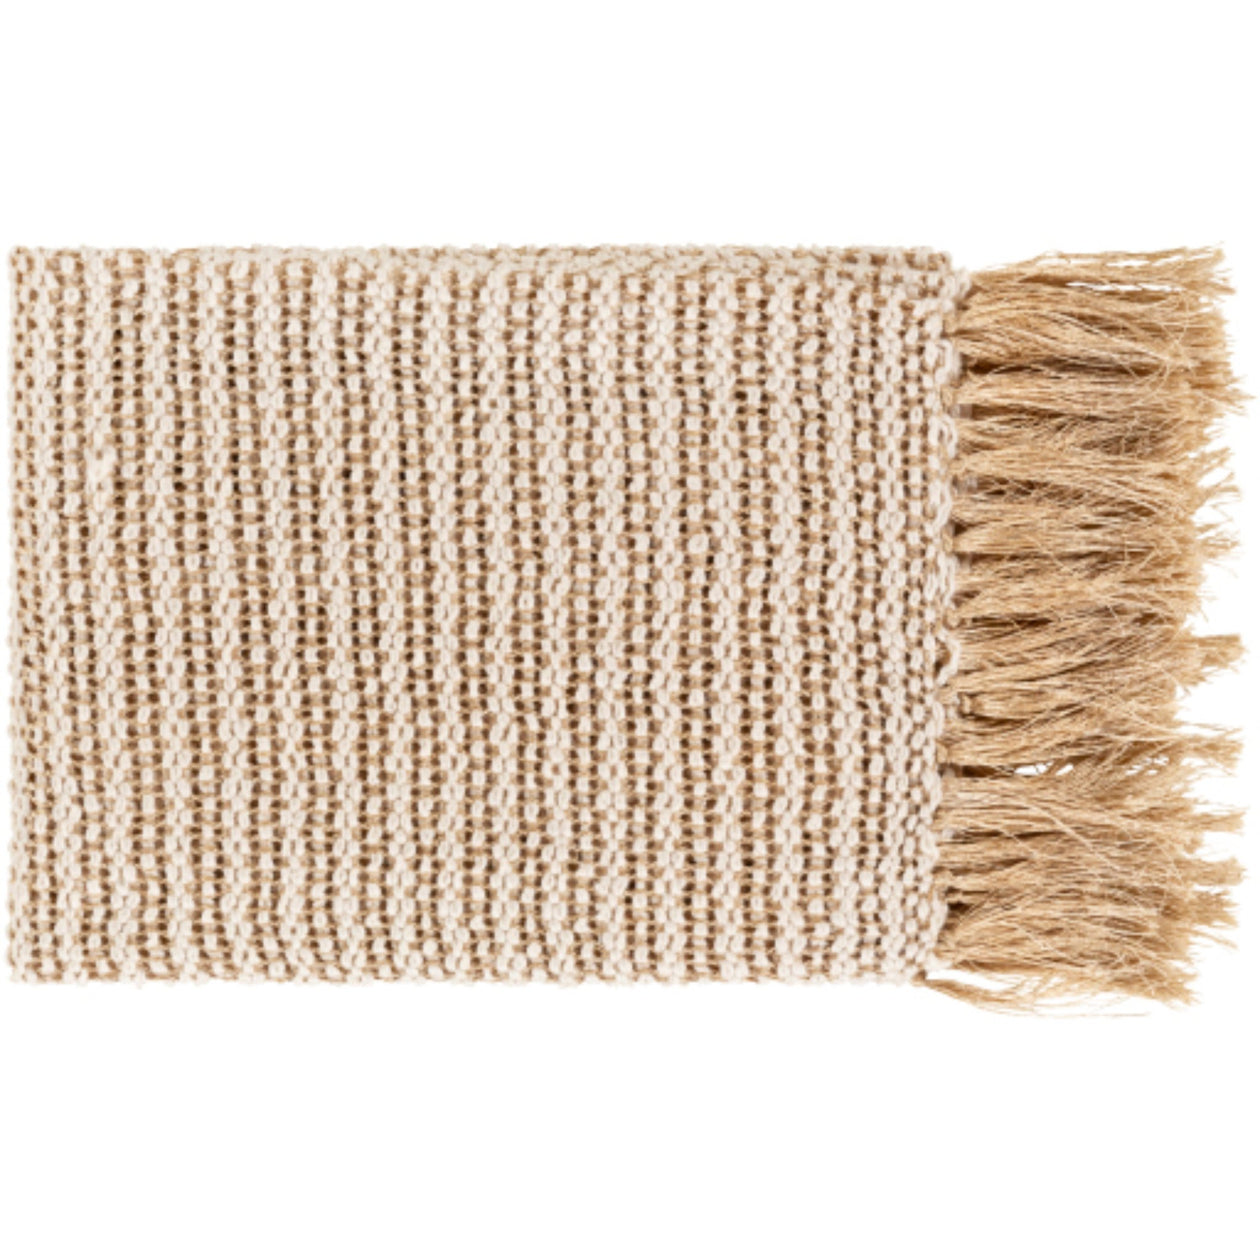 Lanie Throw Blanket - Ivory/Champagne | Surya - Home Décor